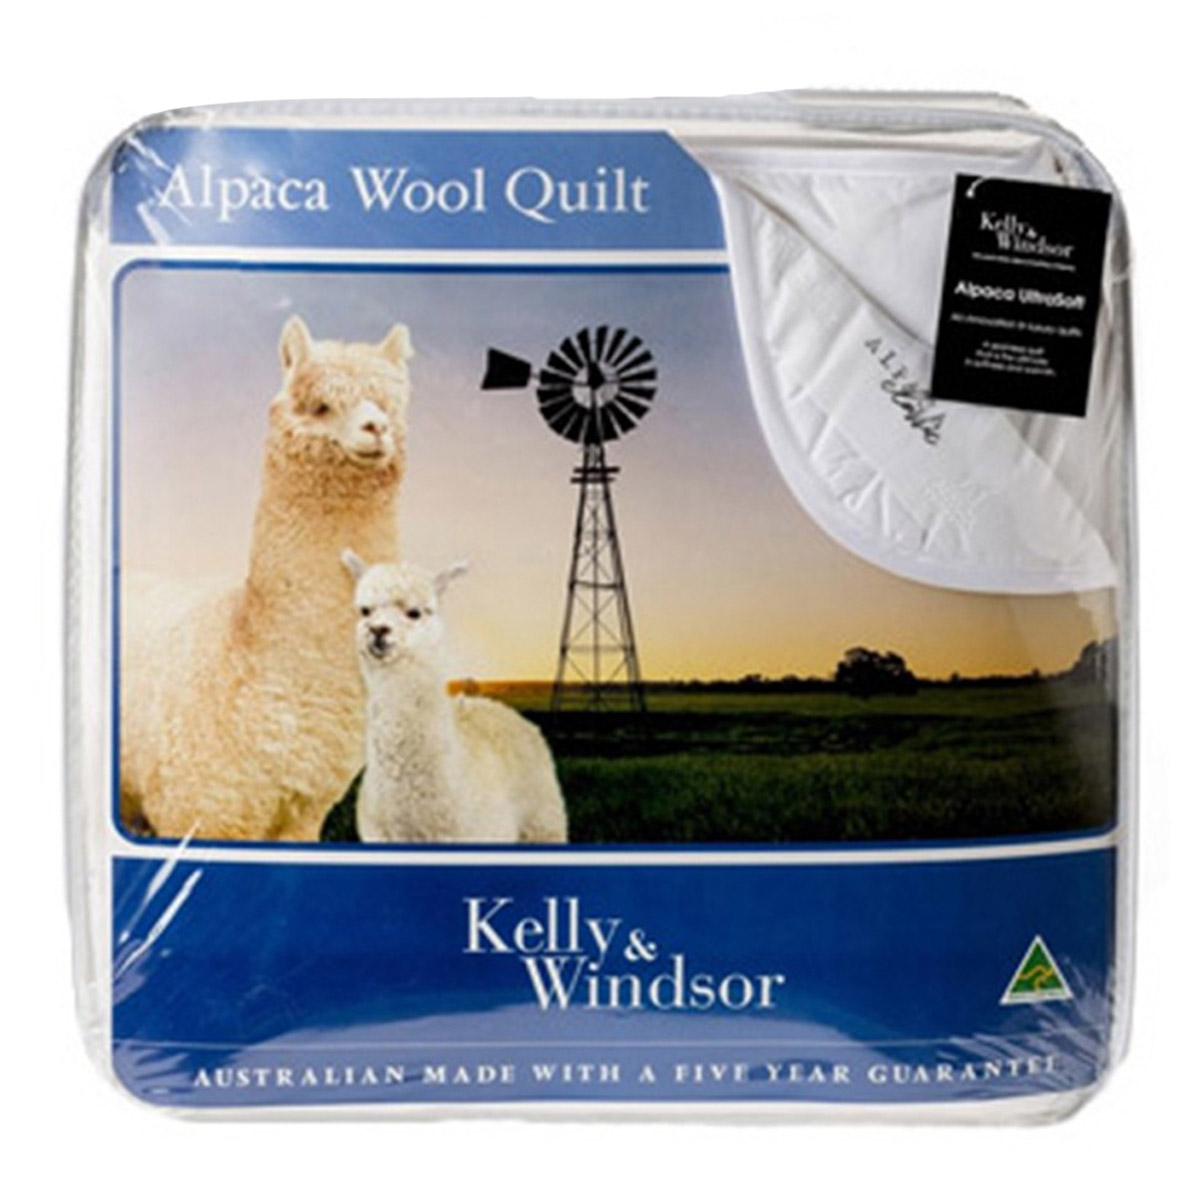 Kelly and Windsor Classic His and Hers Blend Alpaca Wool Quilt